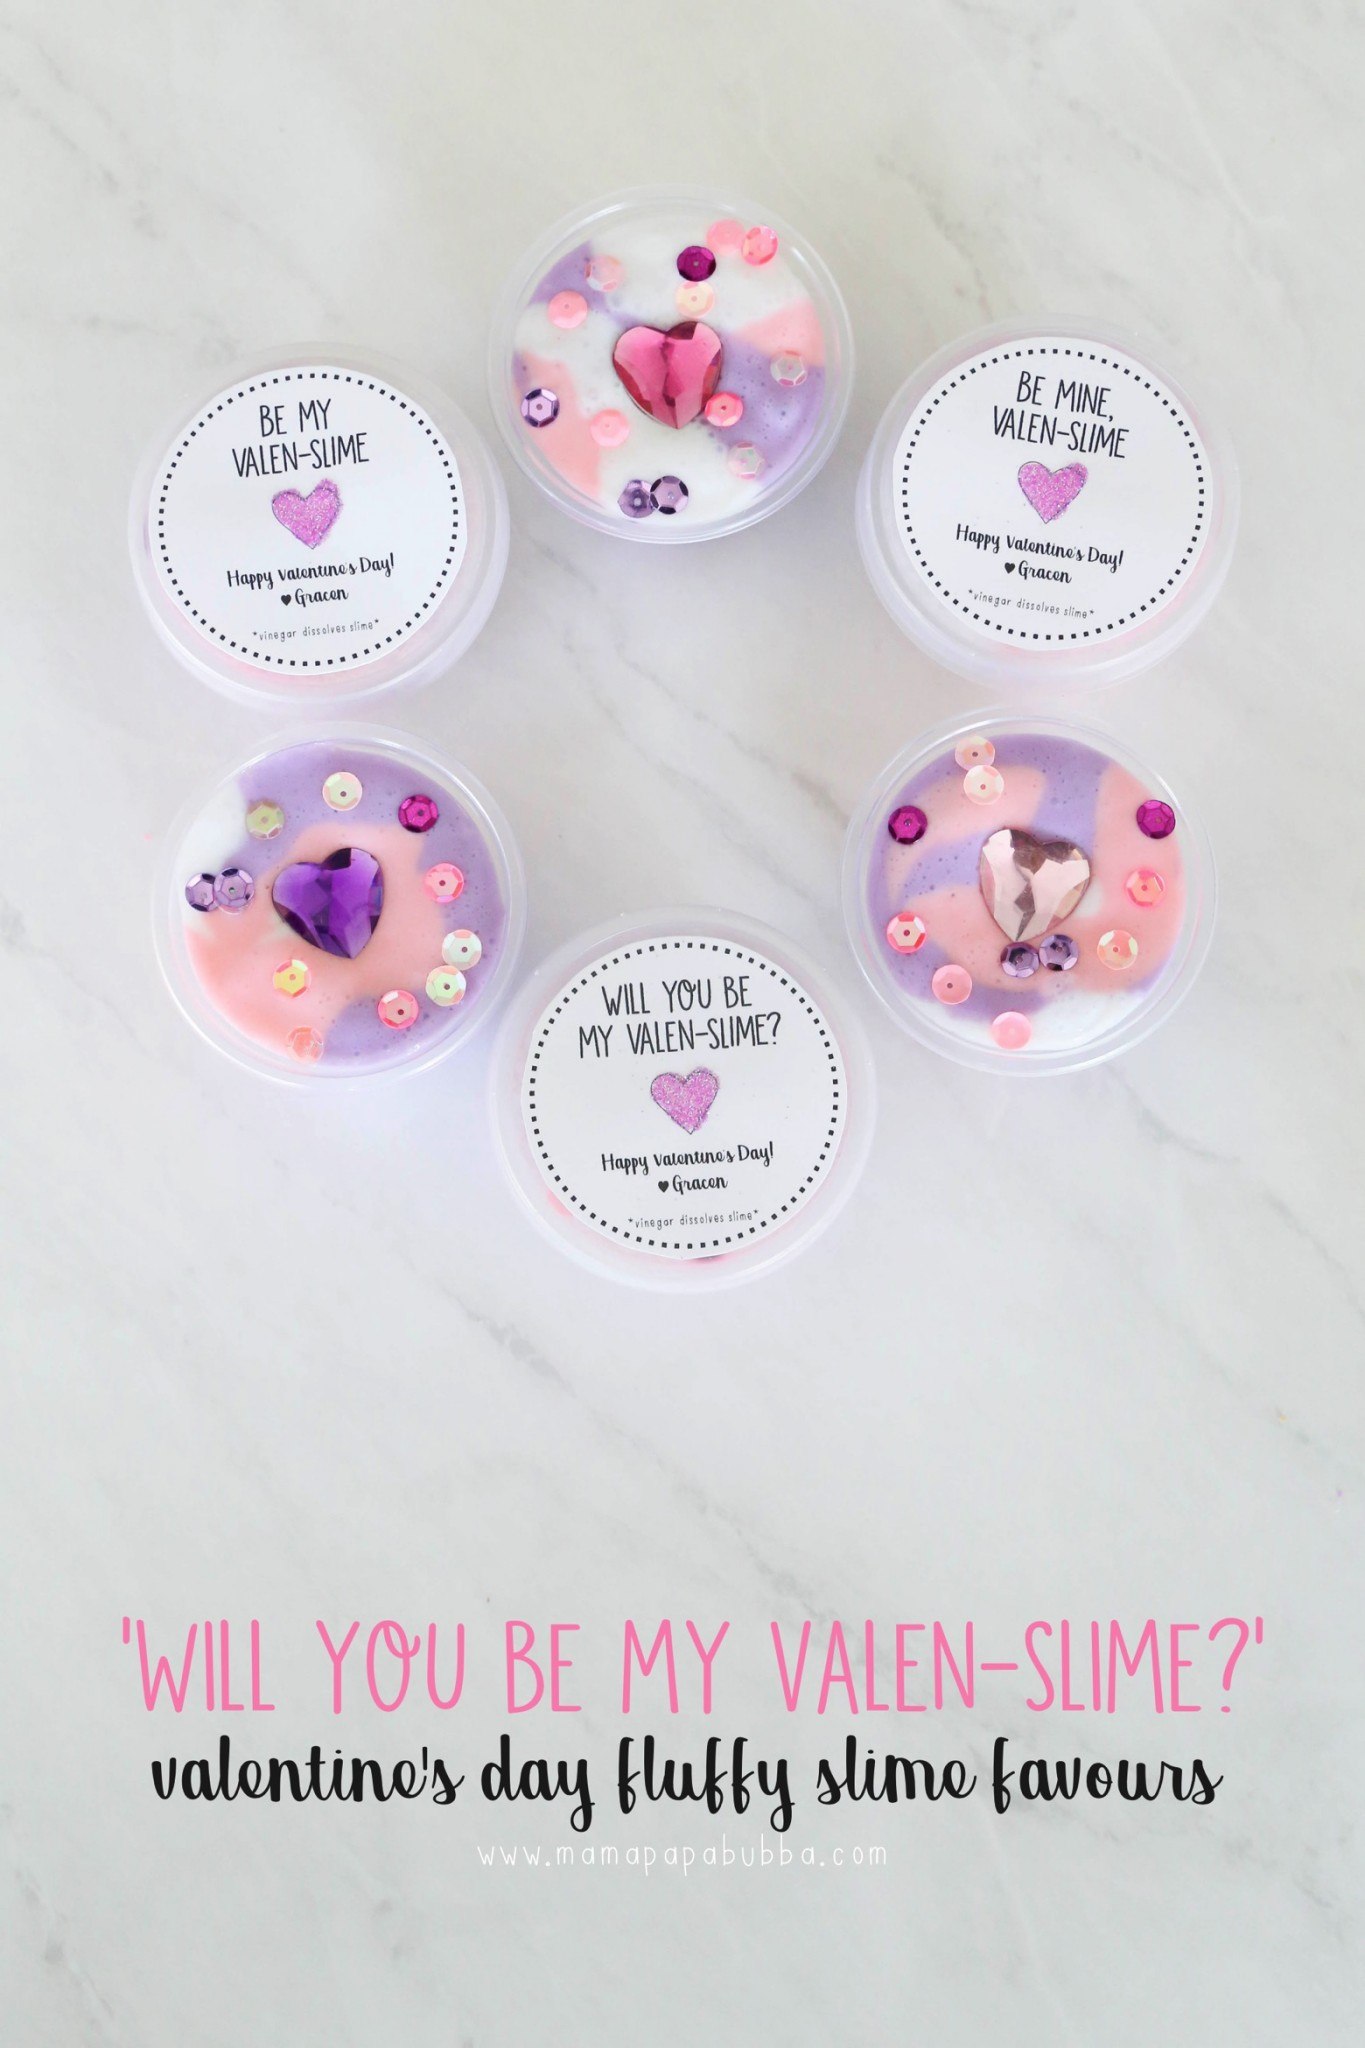 Valentine s Day Fluffy Slime Favours | Mama Papa Bubba